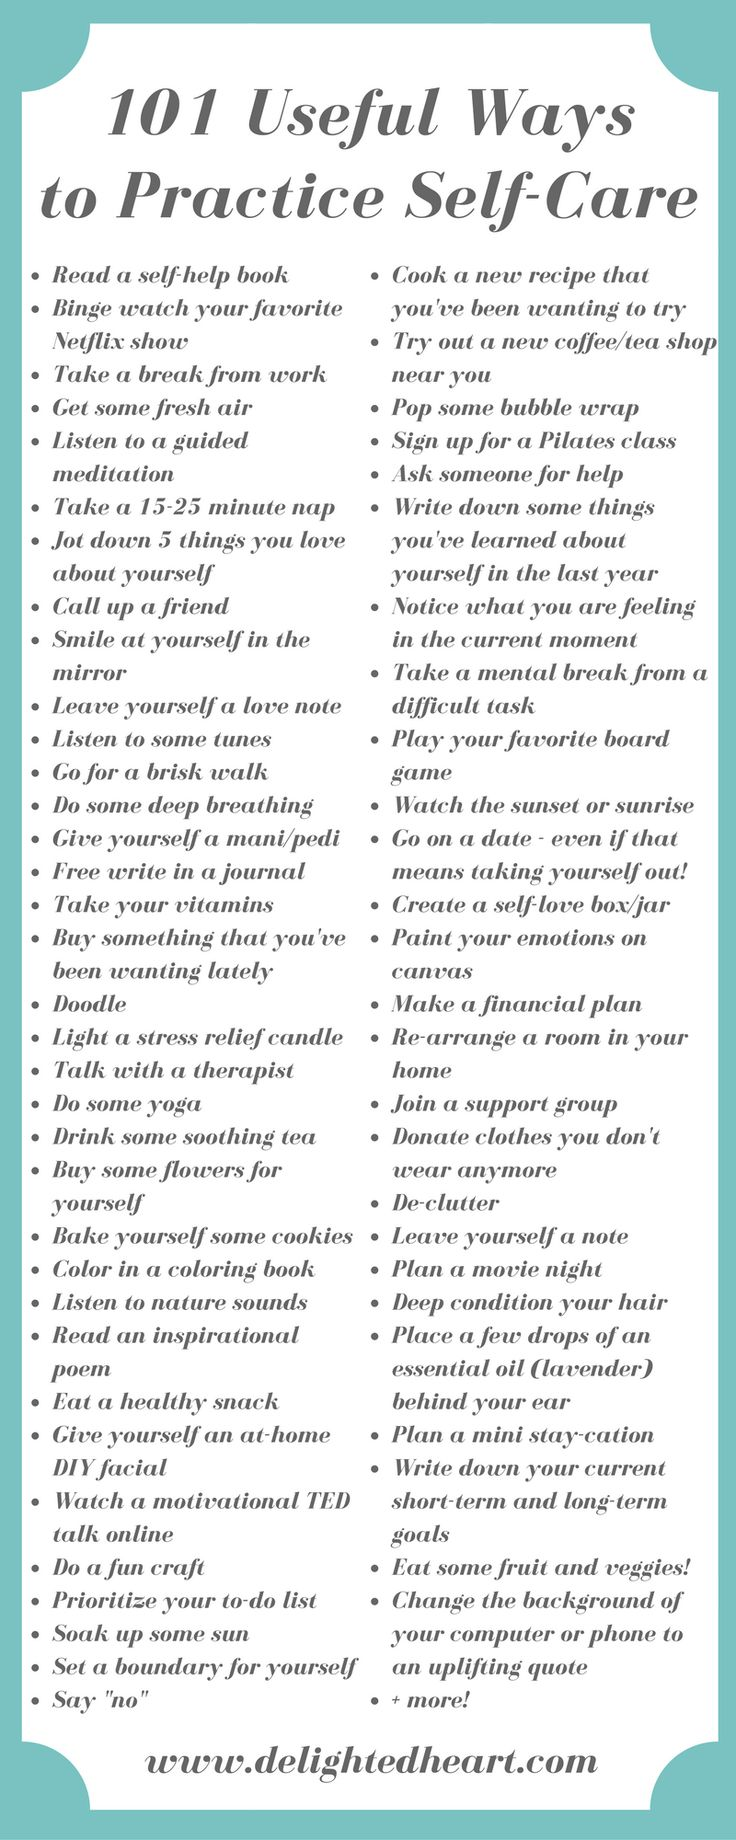 Self care and relaxation time. Here's a list of self care ideas. Just a pity, they list Netflix at number 2. Come on guys there are better things to do!!!